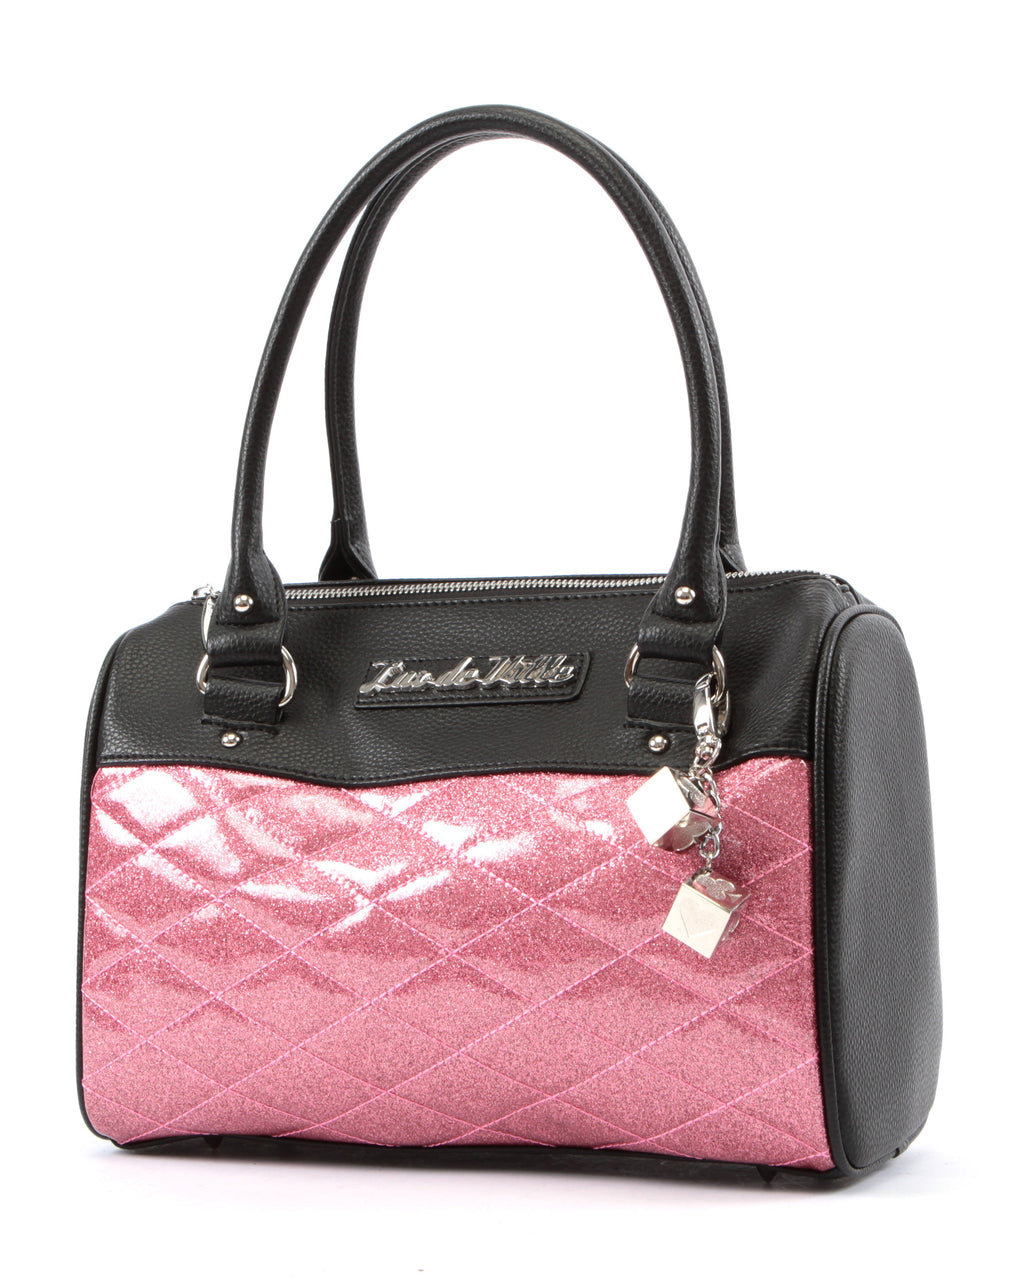 Mini Atomic Tote in Pink Sparkle and Black Matte by Lux De Ville